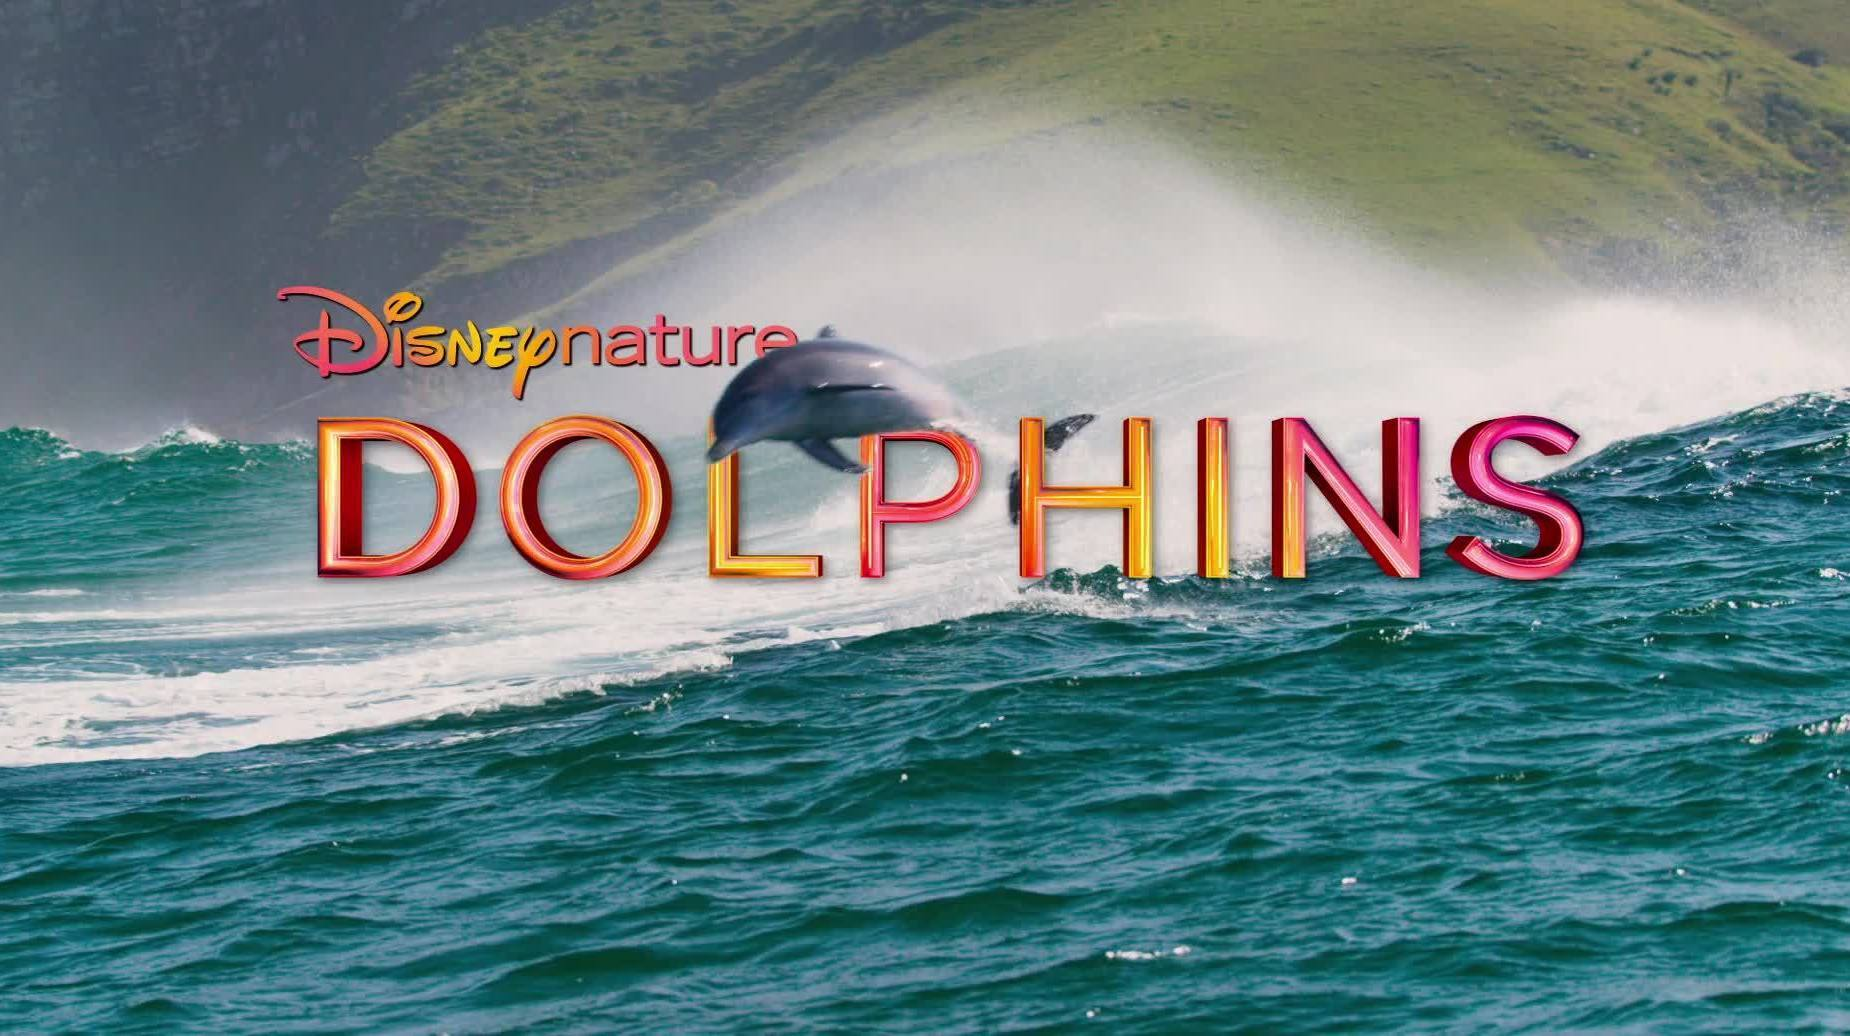 Disneynature's Dolphin - Official Trailer